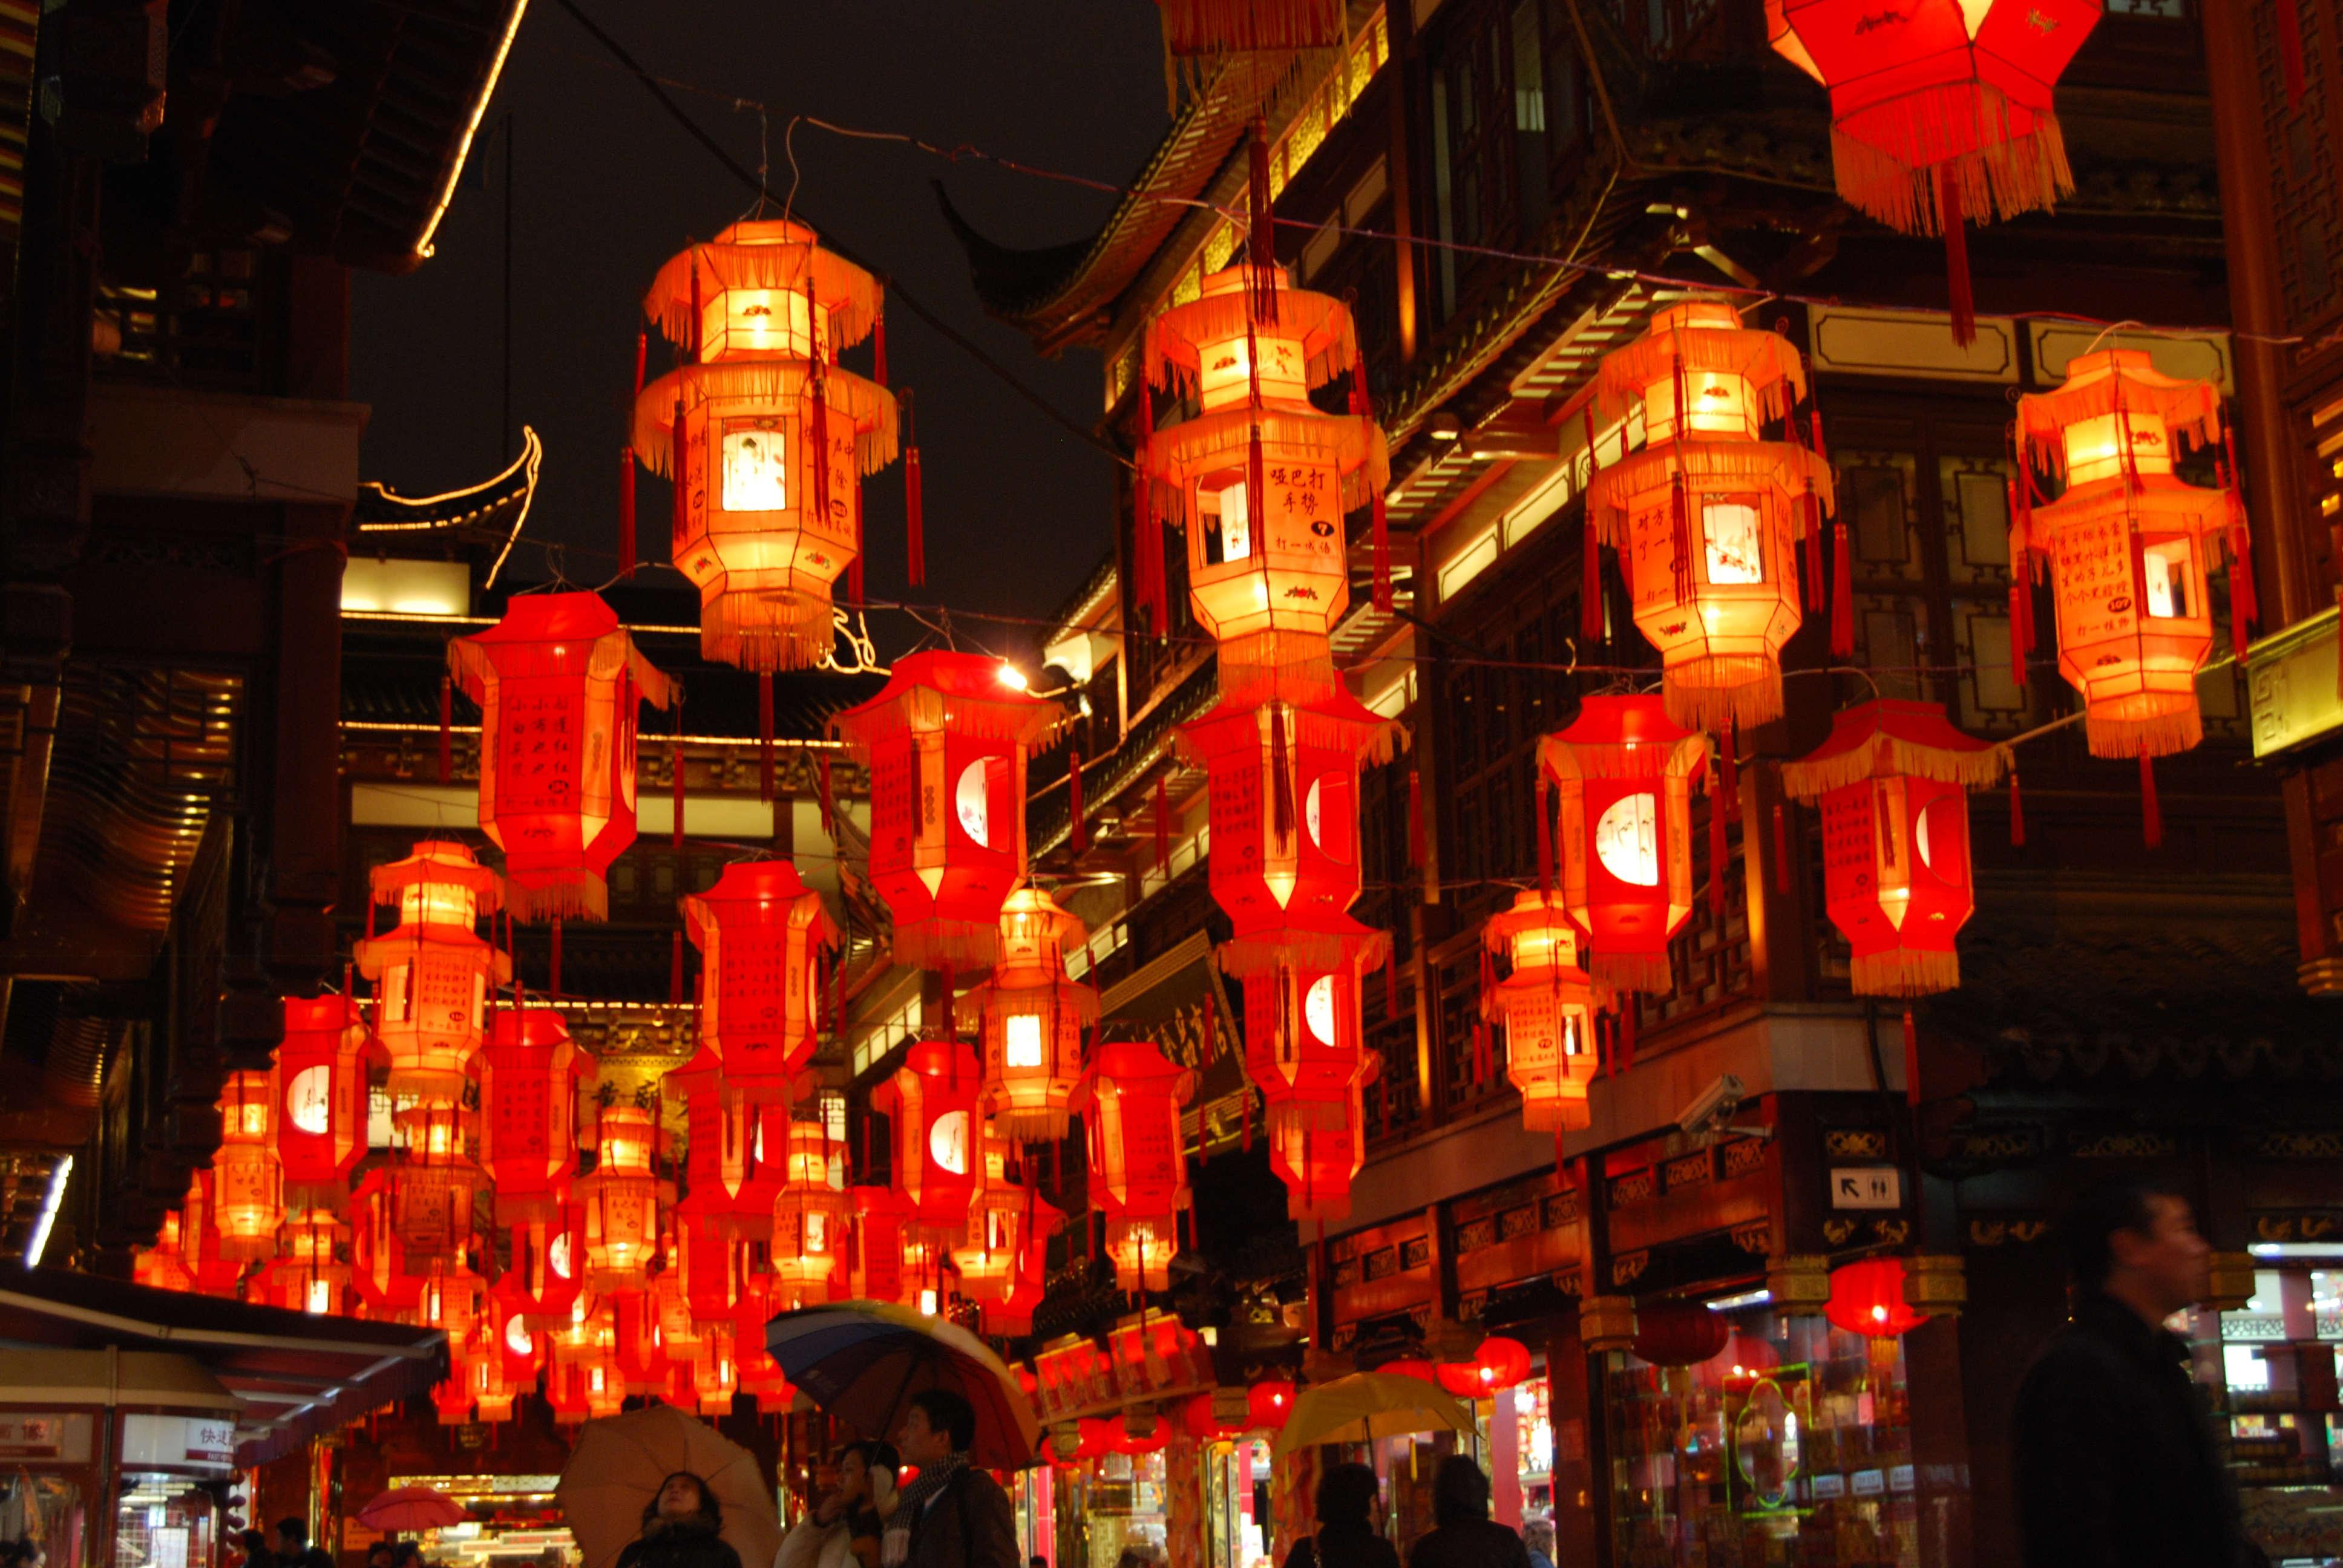 50 Magnificent Photos Of The Lantern Festival In China